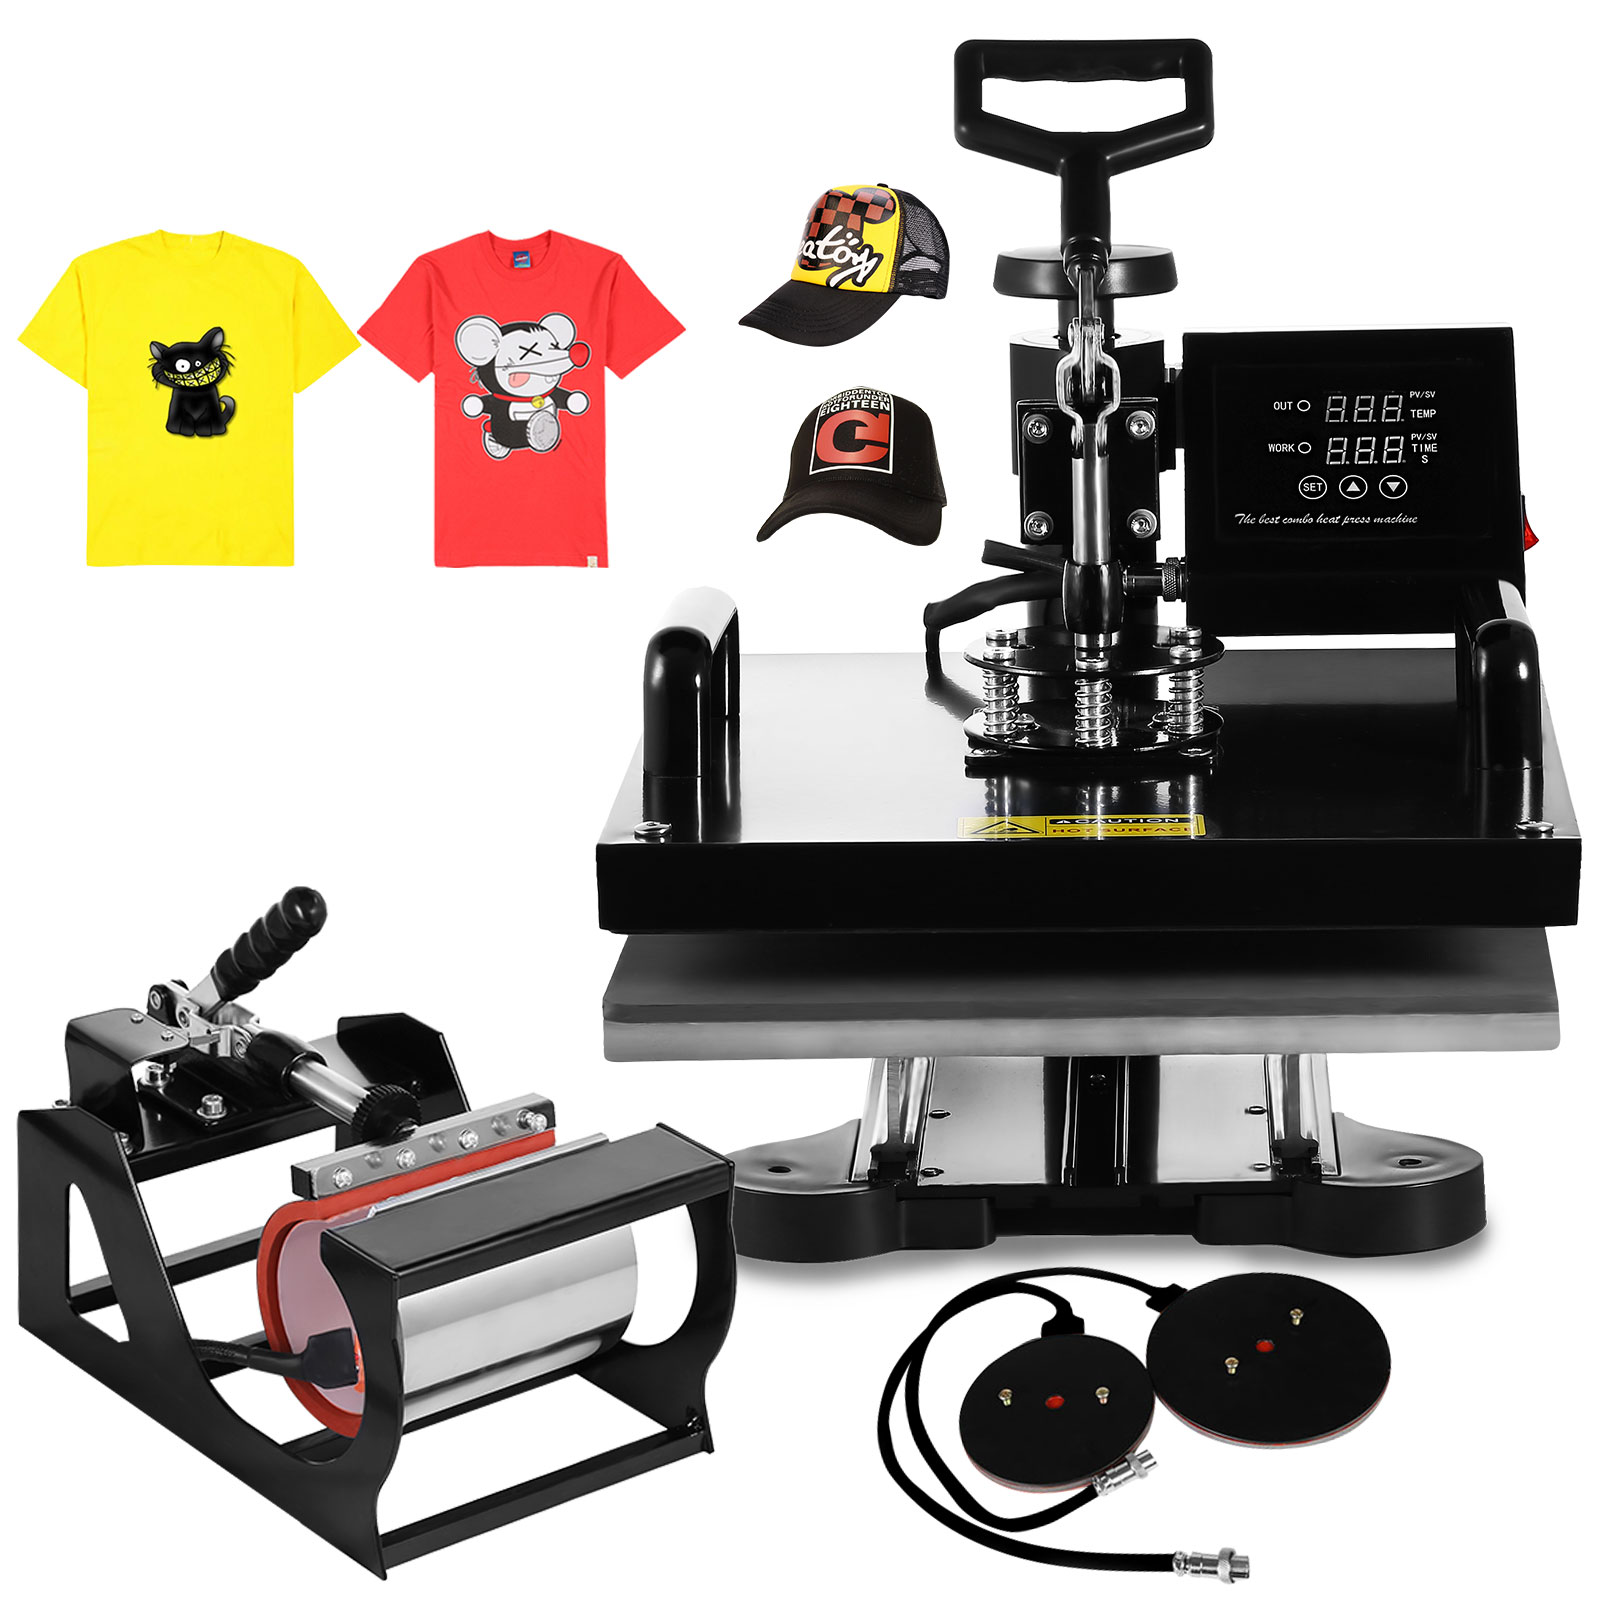 VEVOR Heat Press 15 X 15 Inch 5 in 1 Desktop Iron Baseball Hat Press Multifunction Sublimation Heat Press Machine Digital Swing Away Design